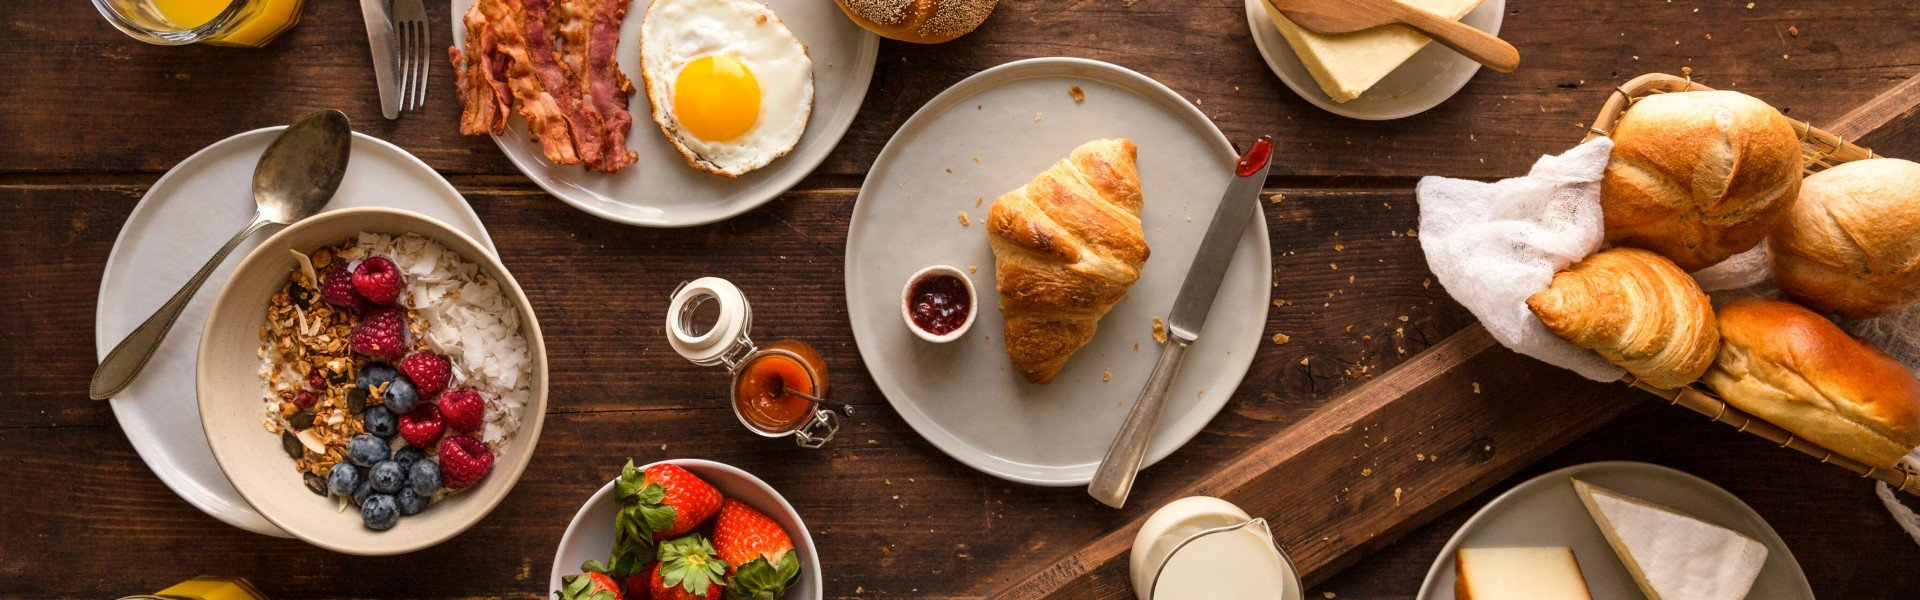 SPAR Mahlzeit Brunch Inspiration  Header